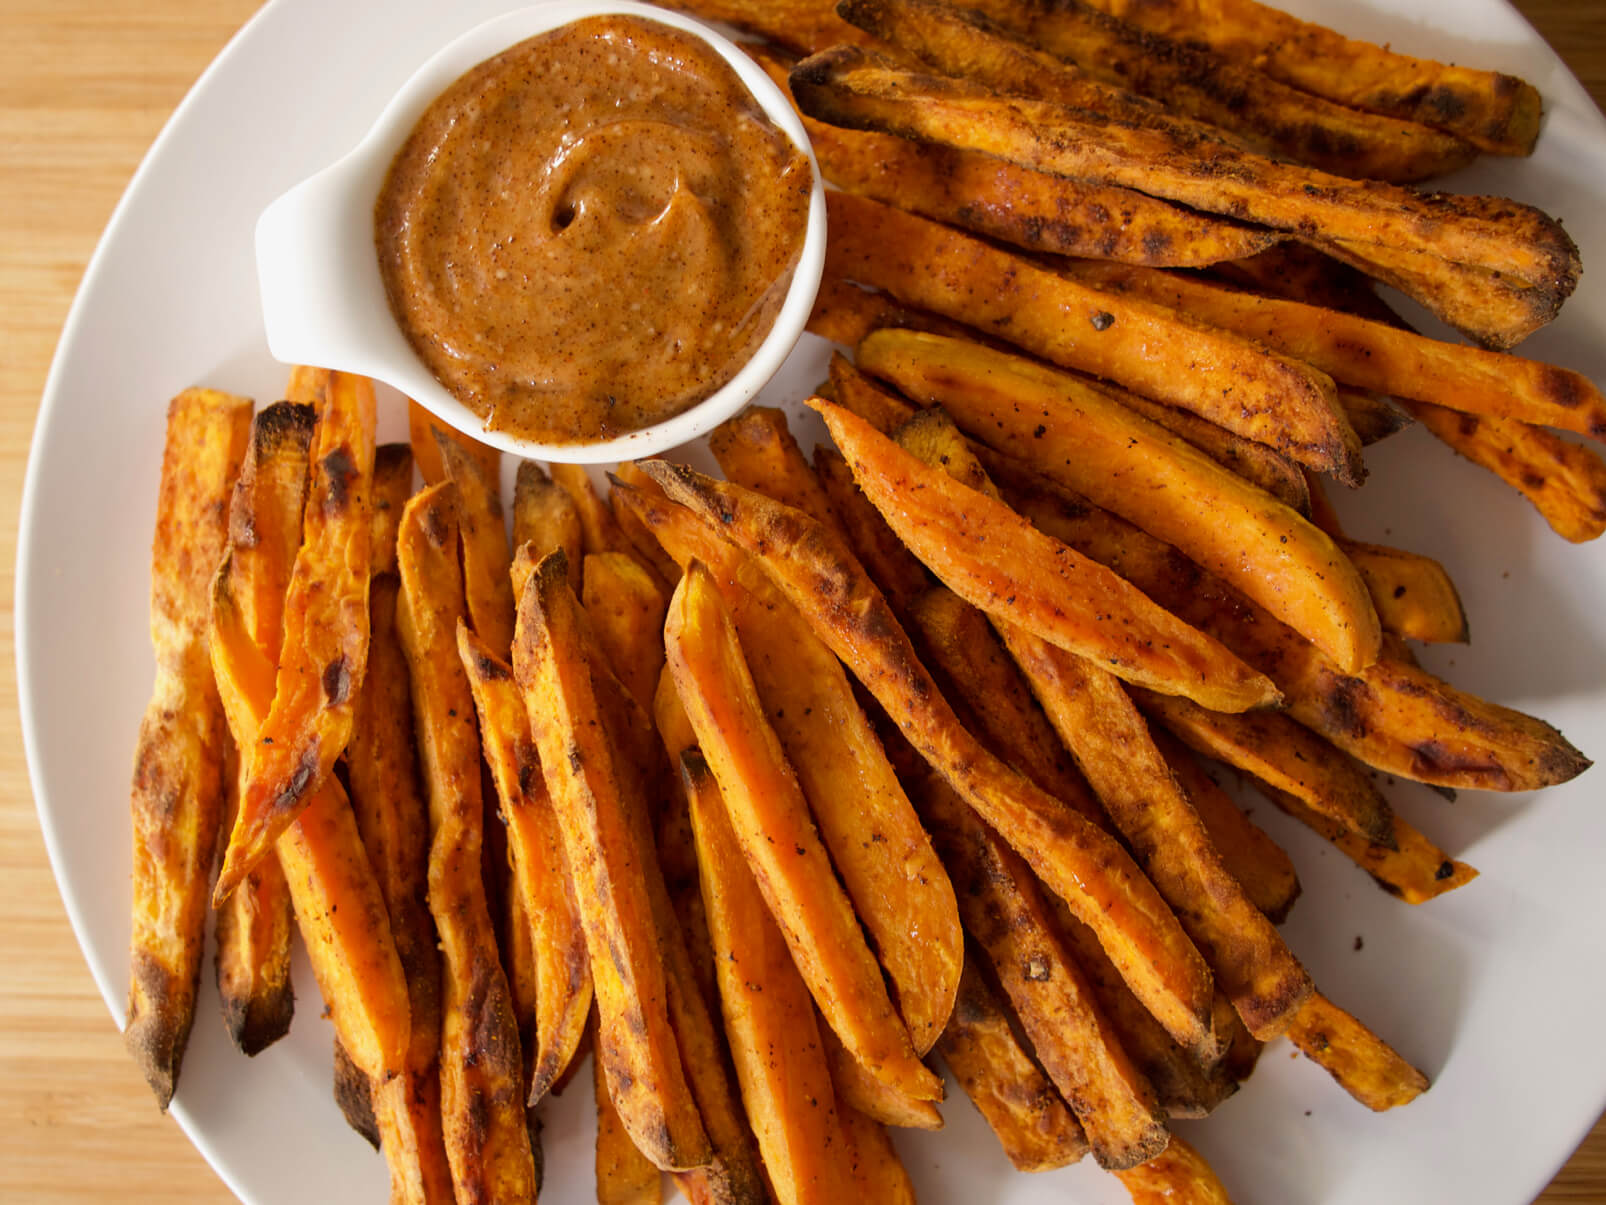 Baked Sweet Potato Fries with Chipotle Maple Aioli